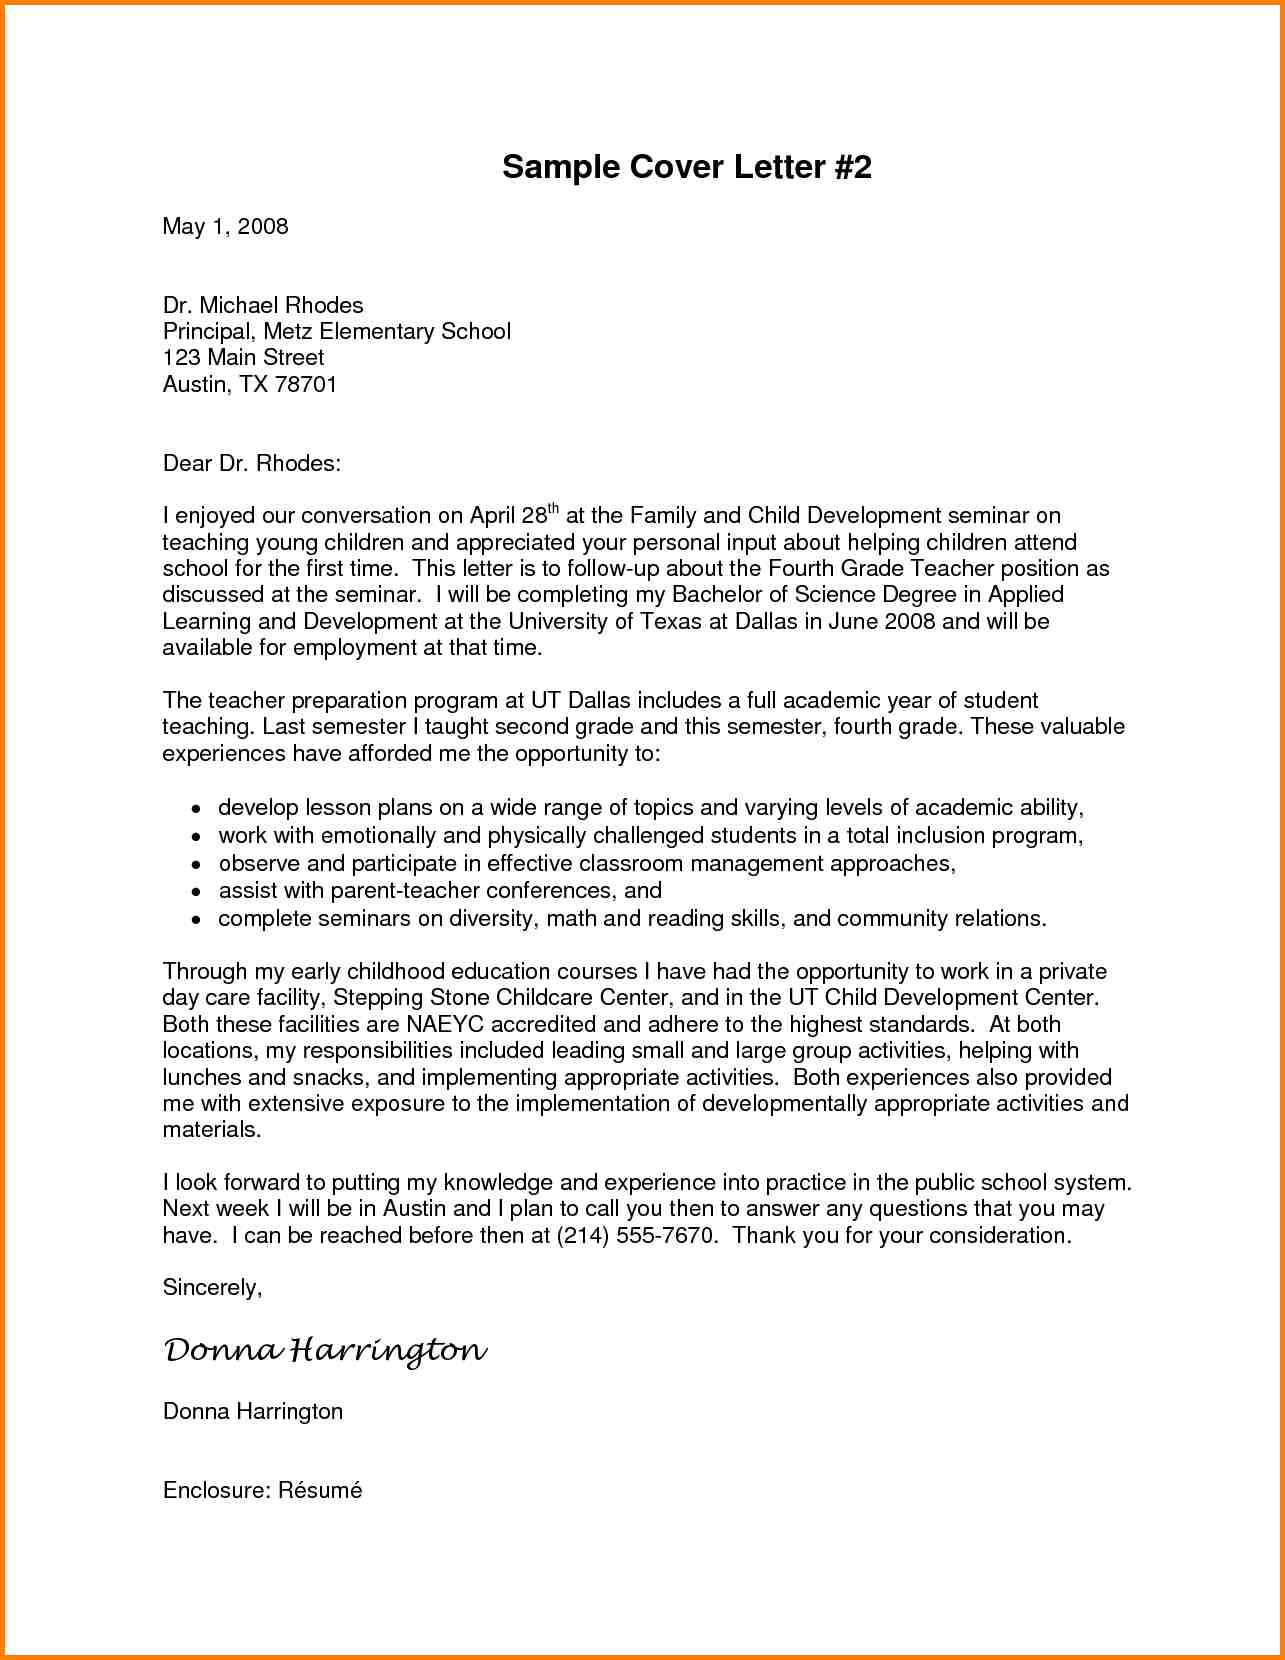 Sample Letter To Principal Mobile Discoveries